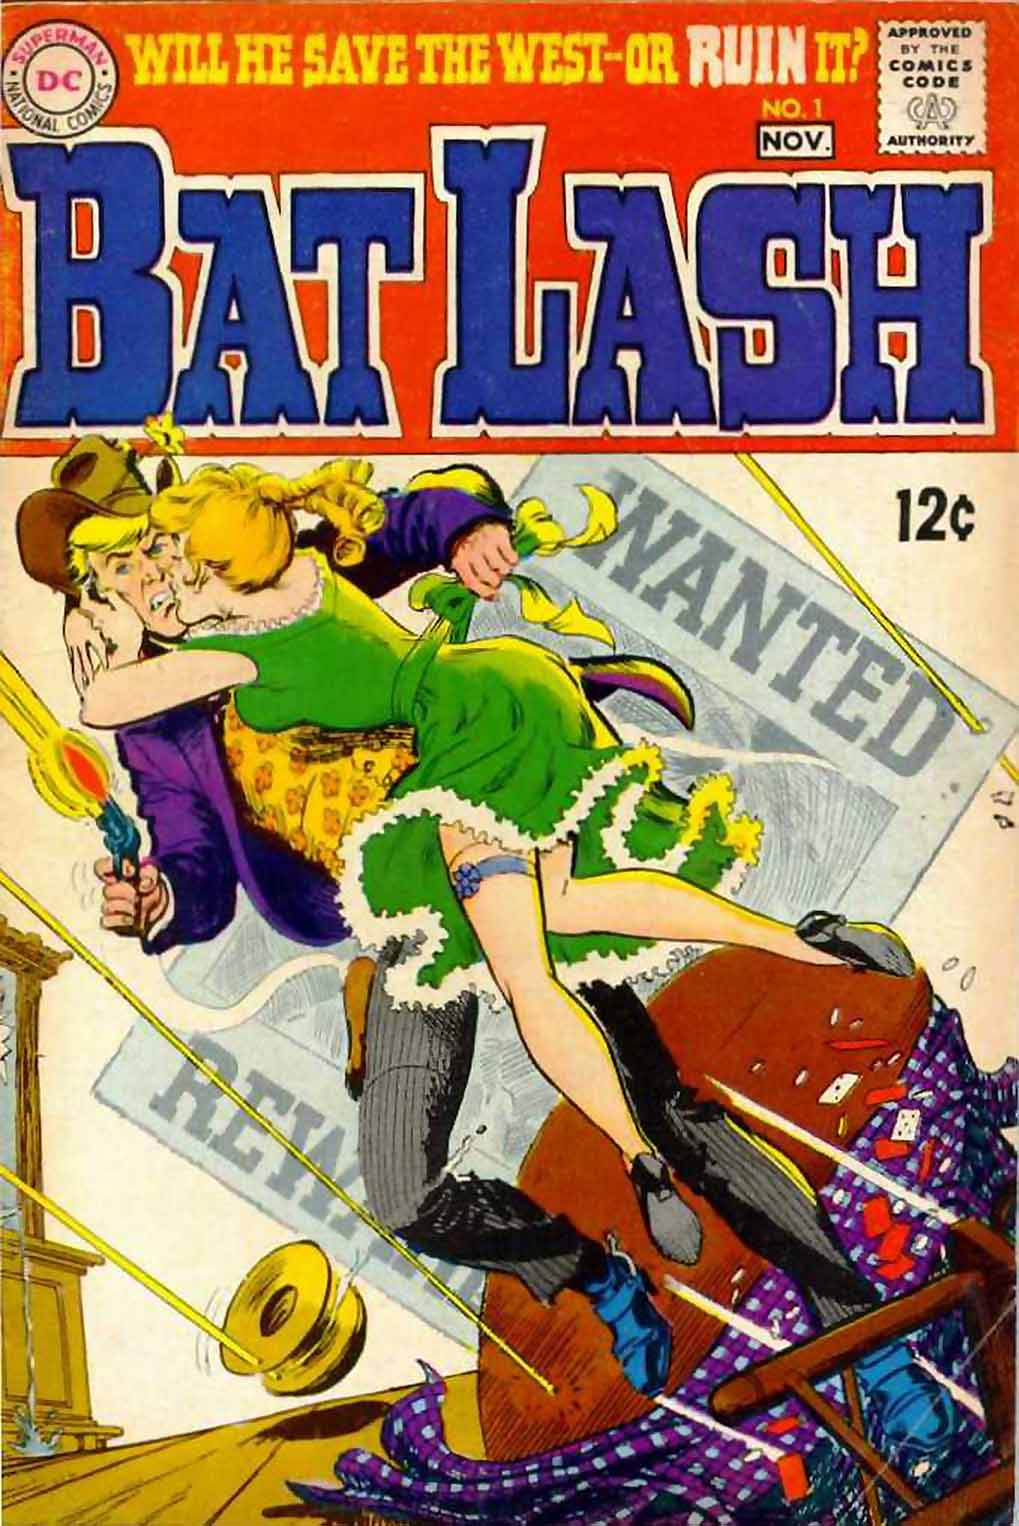 Bat Lash (1968) #1, cover by Nick Cardy.